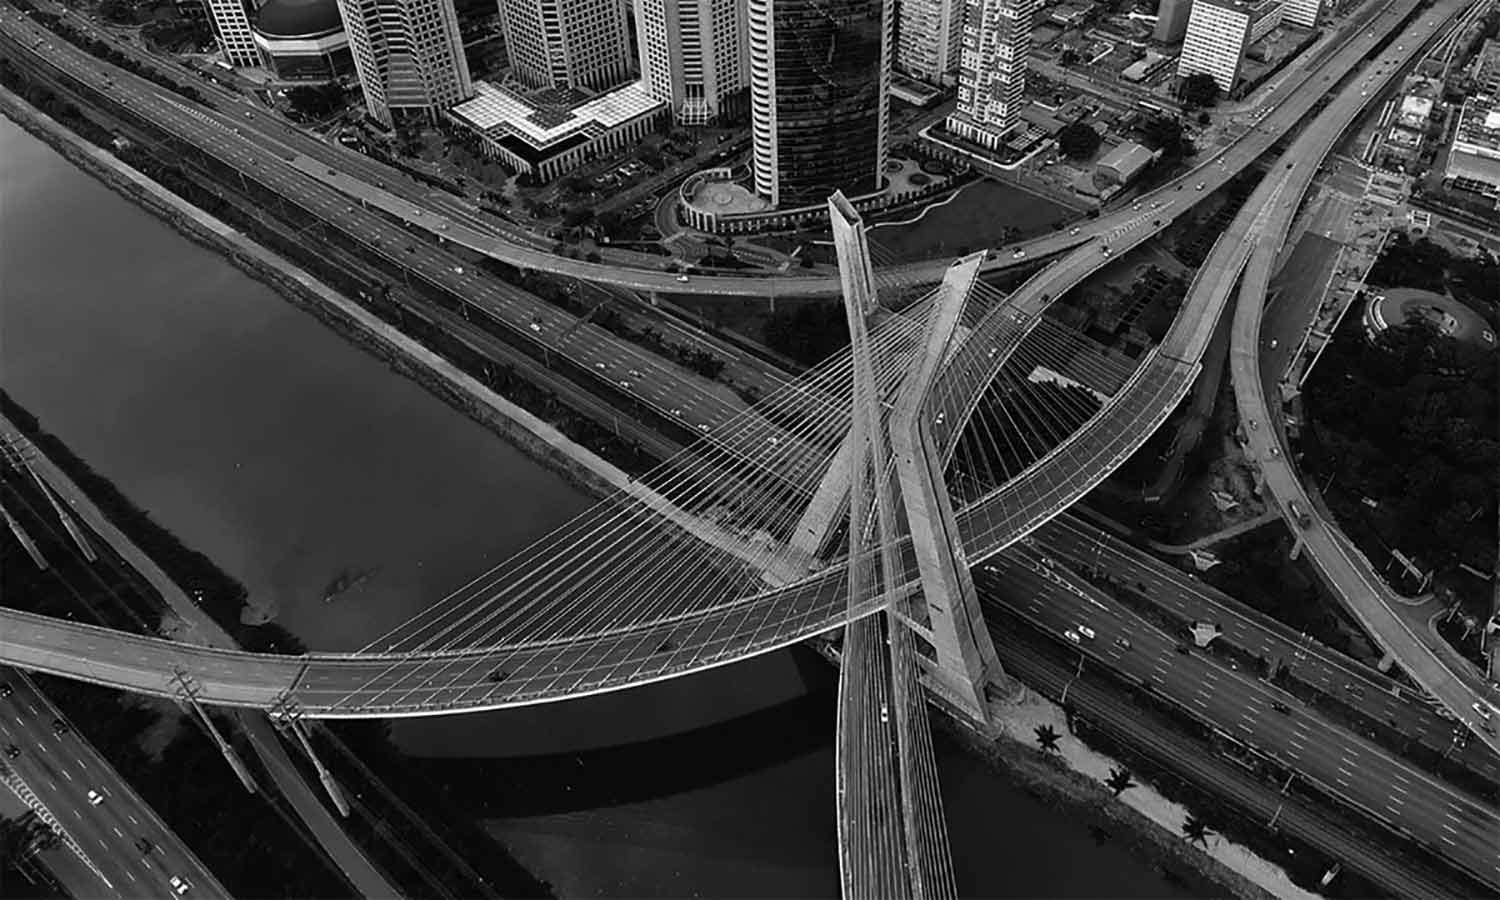 Aerial view of the most famous bridge in the city of Sao Paulo